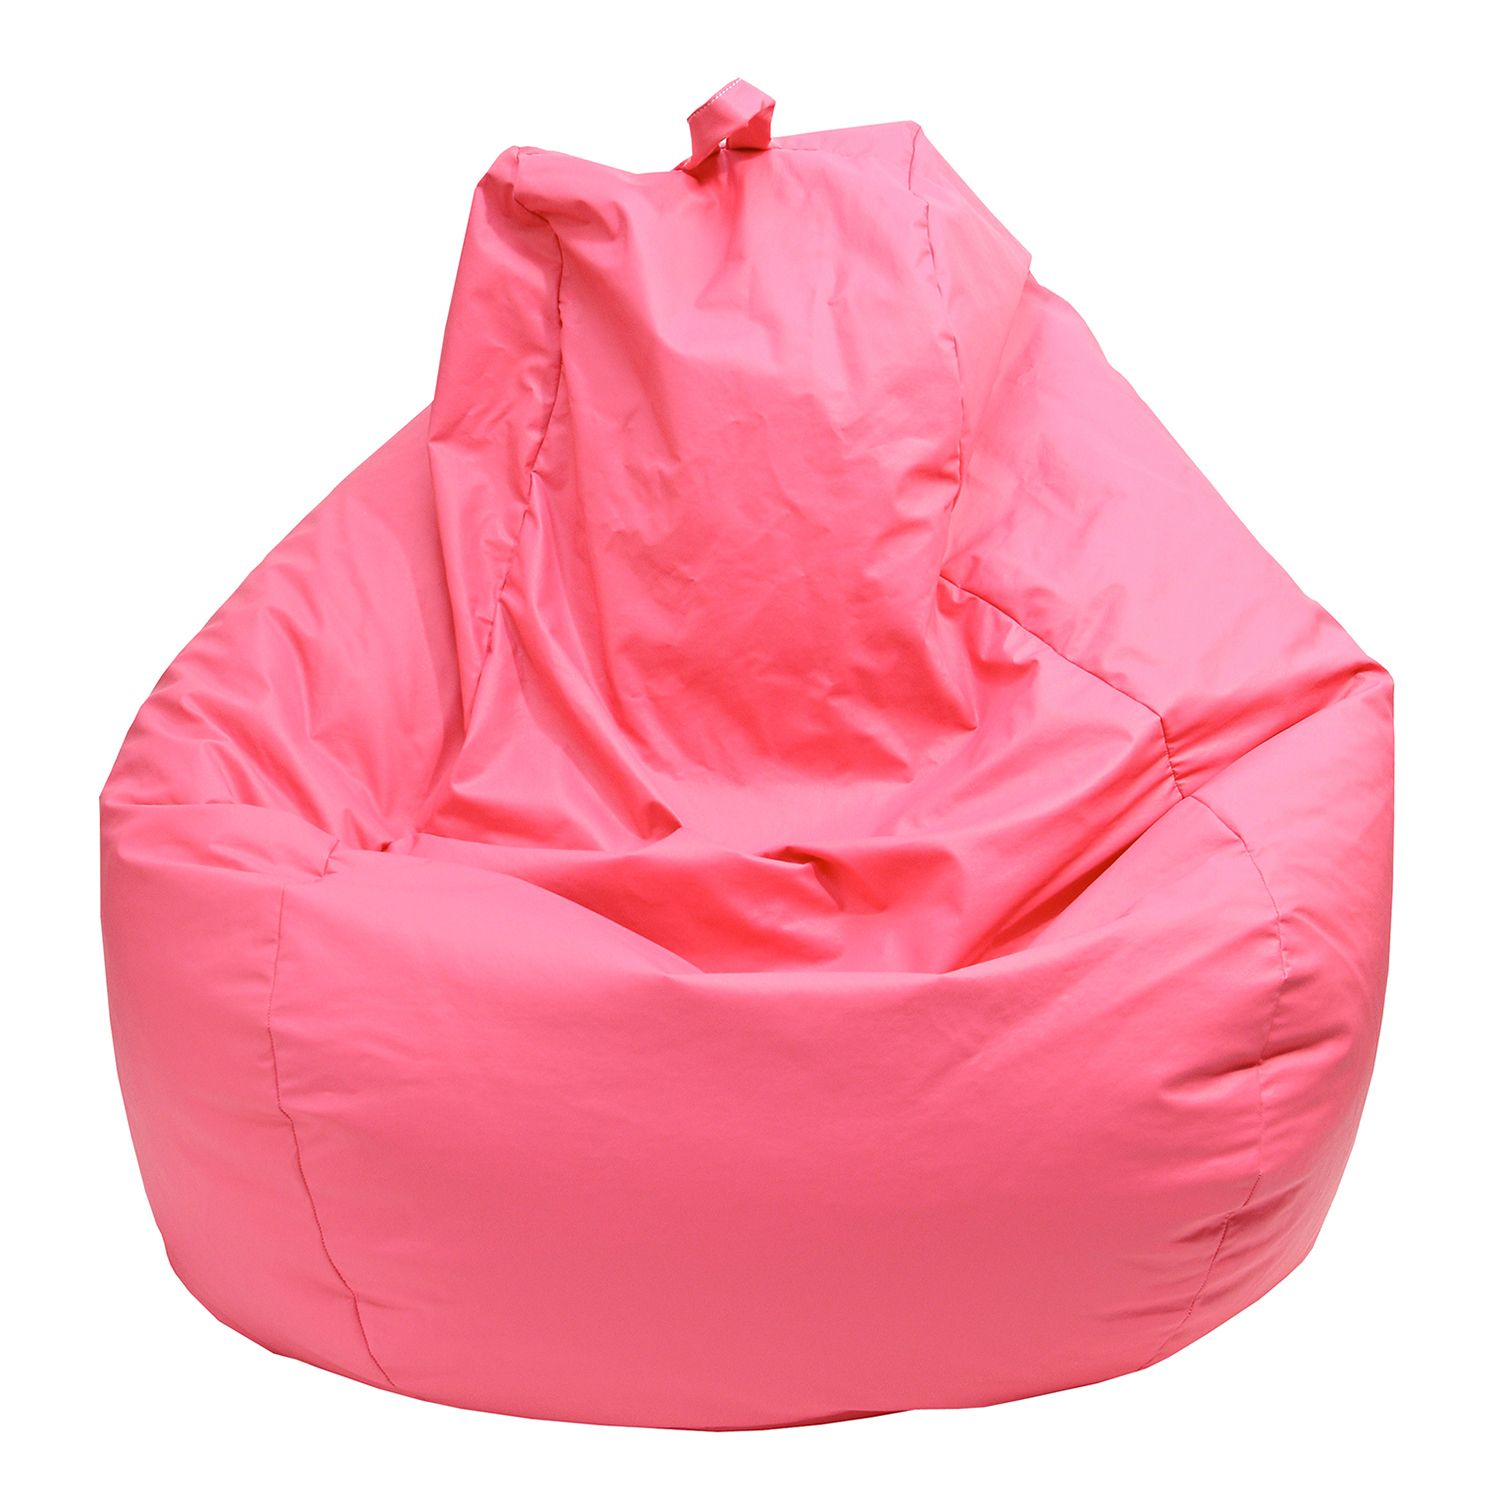 Beanbag Chairs Chairs Furniture Kohls